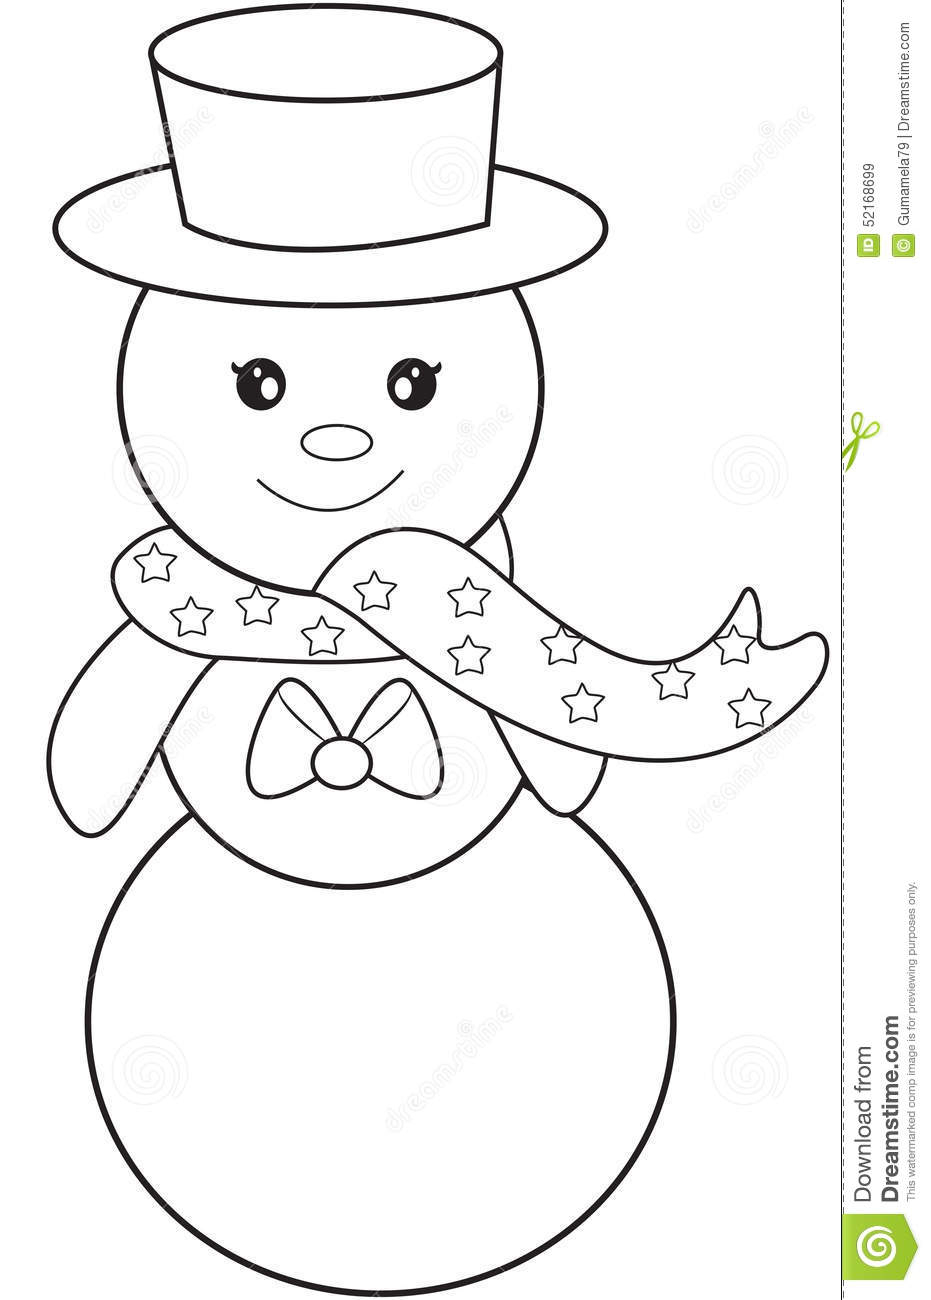 Snowmen Coloring Pages Now Pictures Of Snowmen To Color Snowman Coloring Pages Free